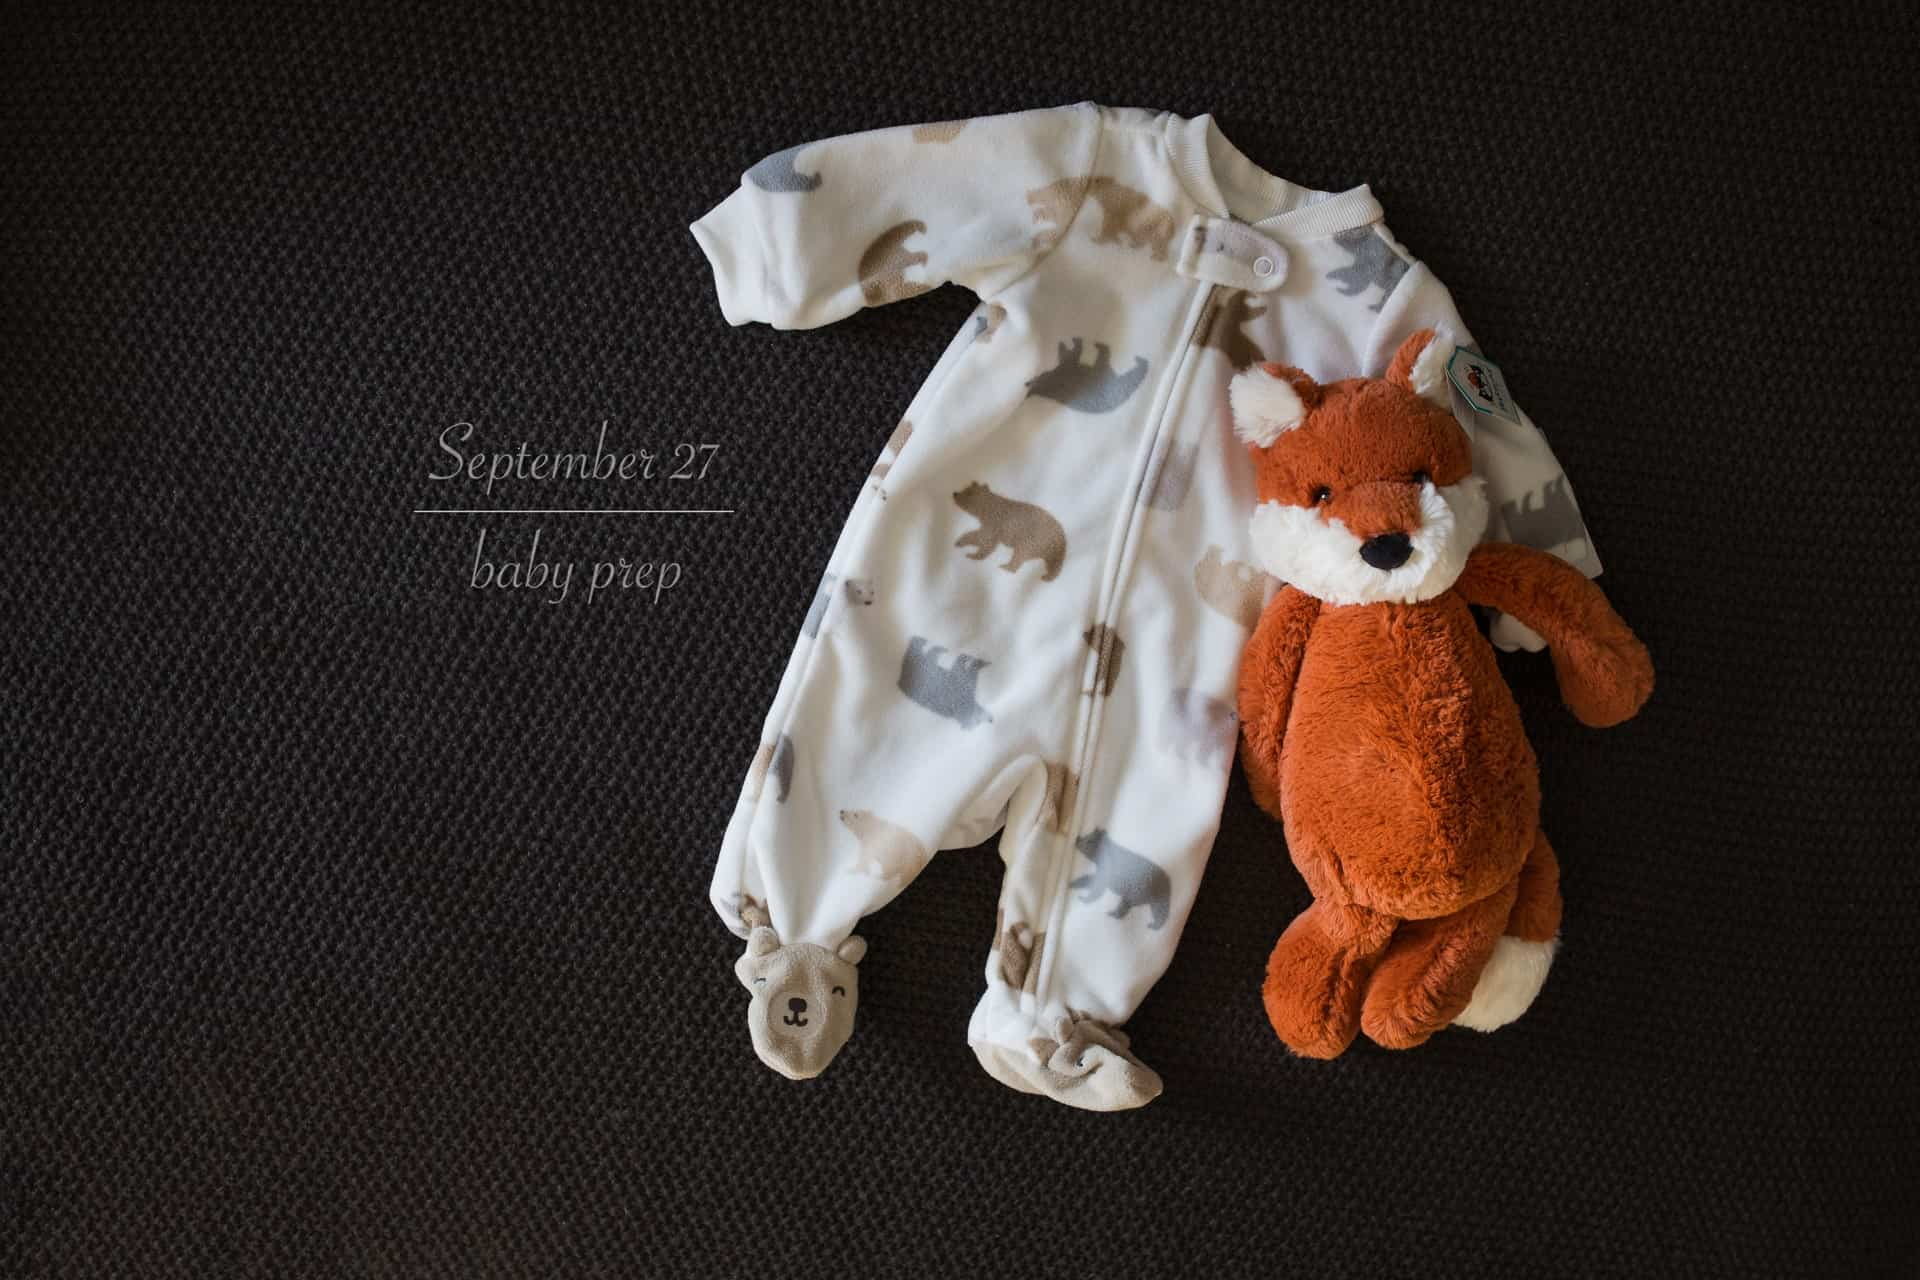 baby sleeper and stuffed fox laying on bed